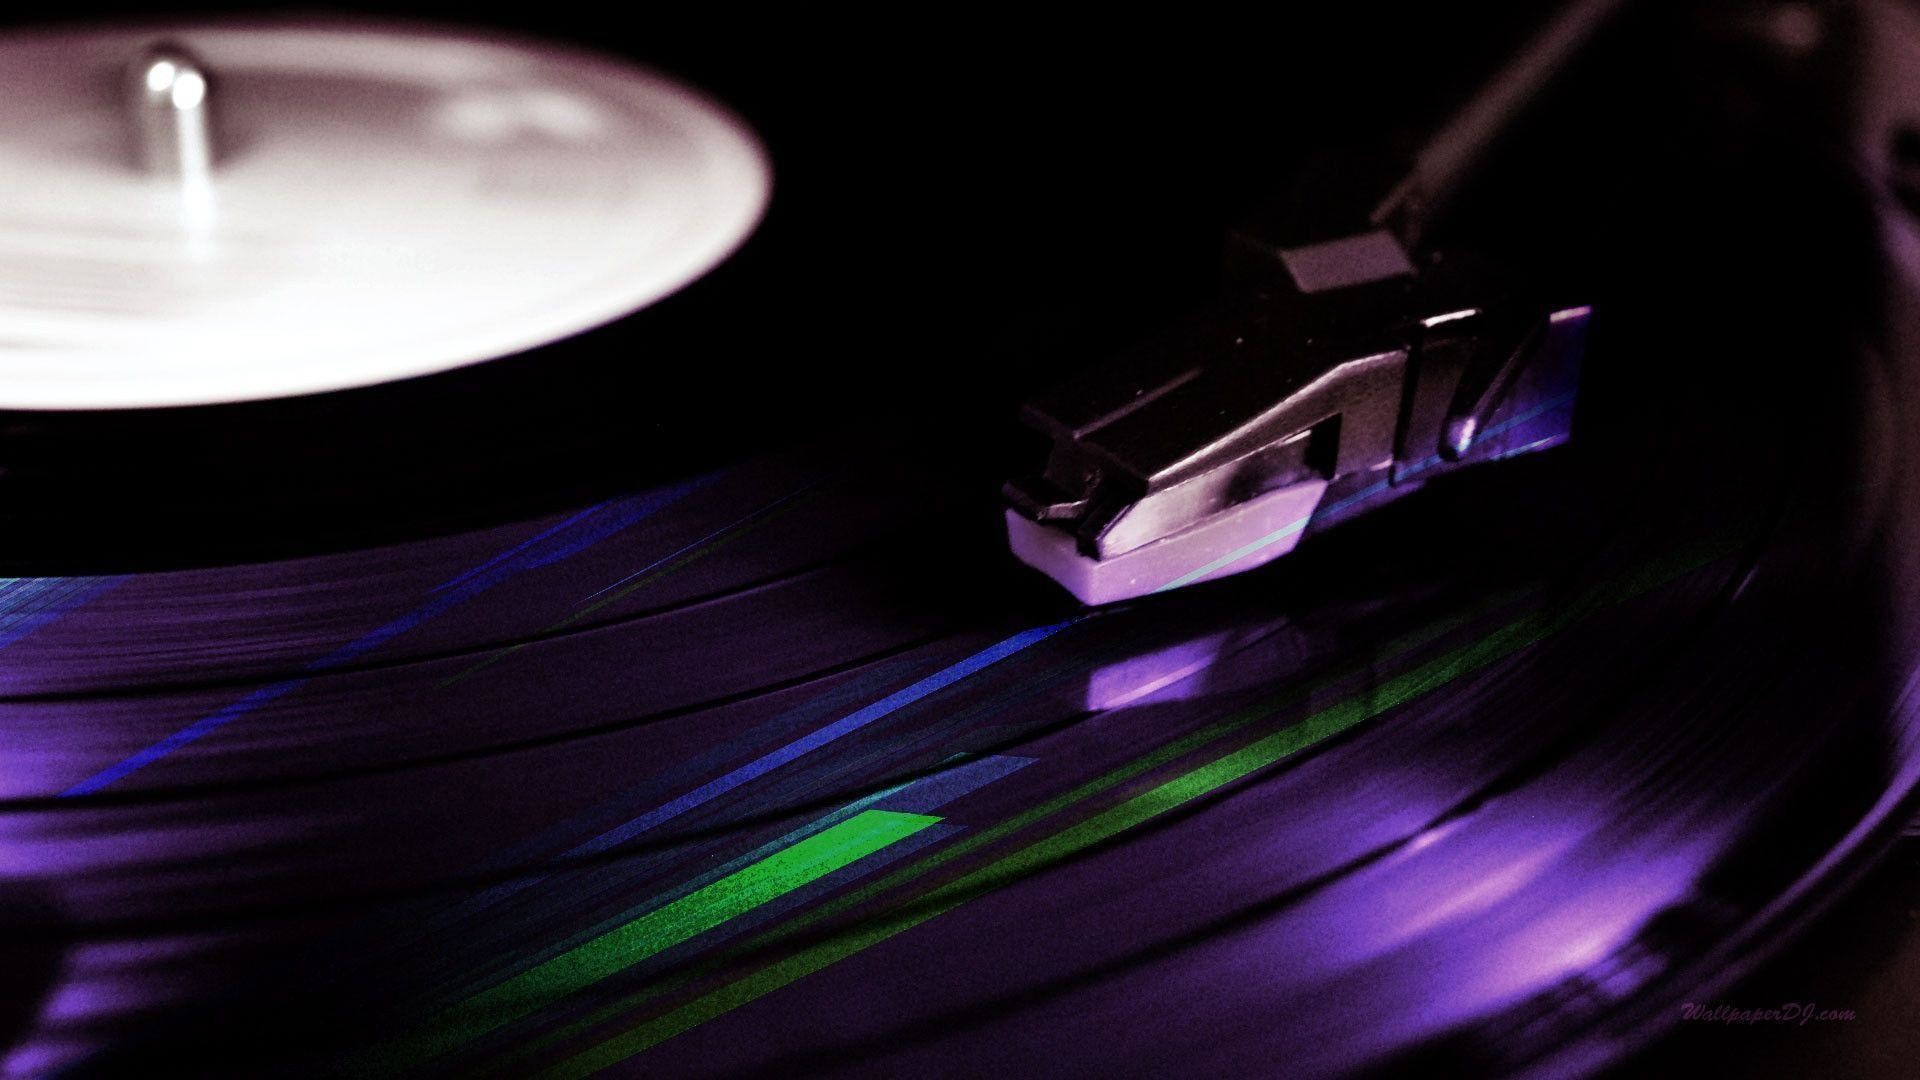 Wallpapers For > Dj Turntable Wallpaper